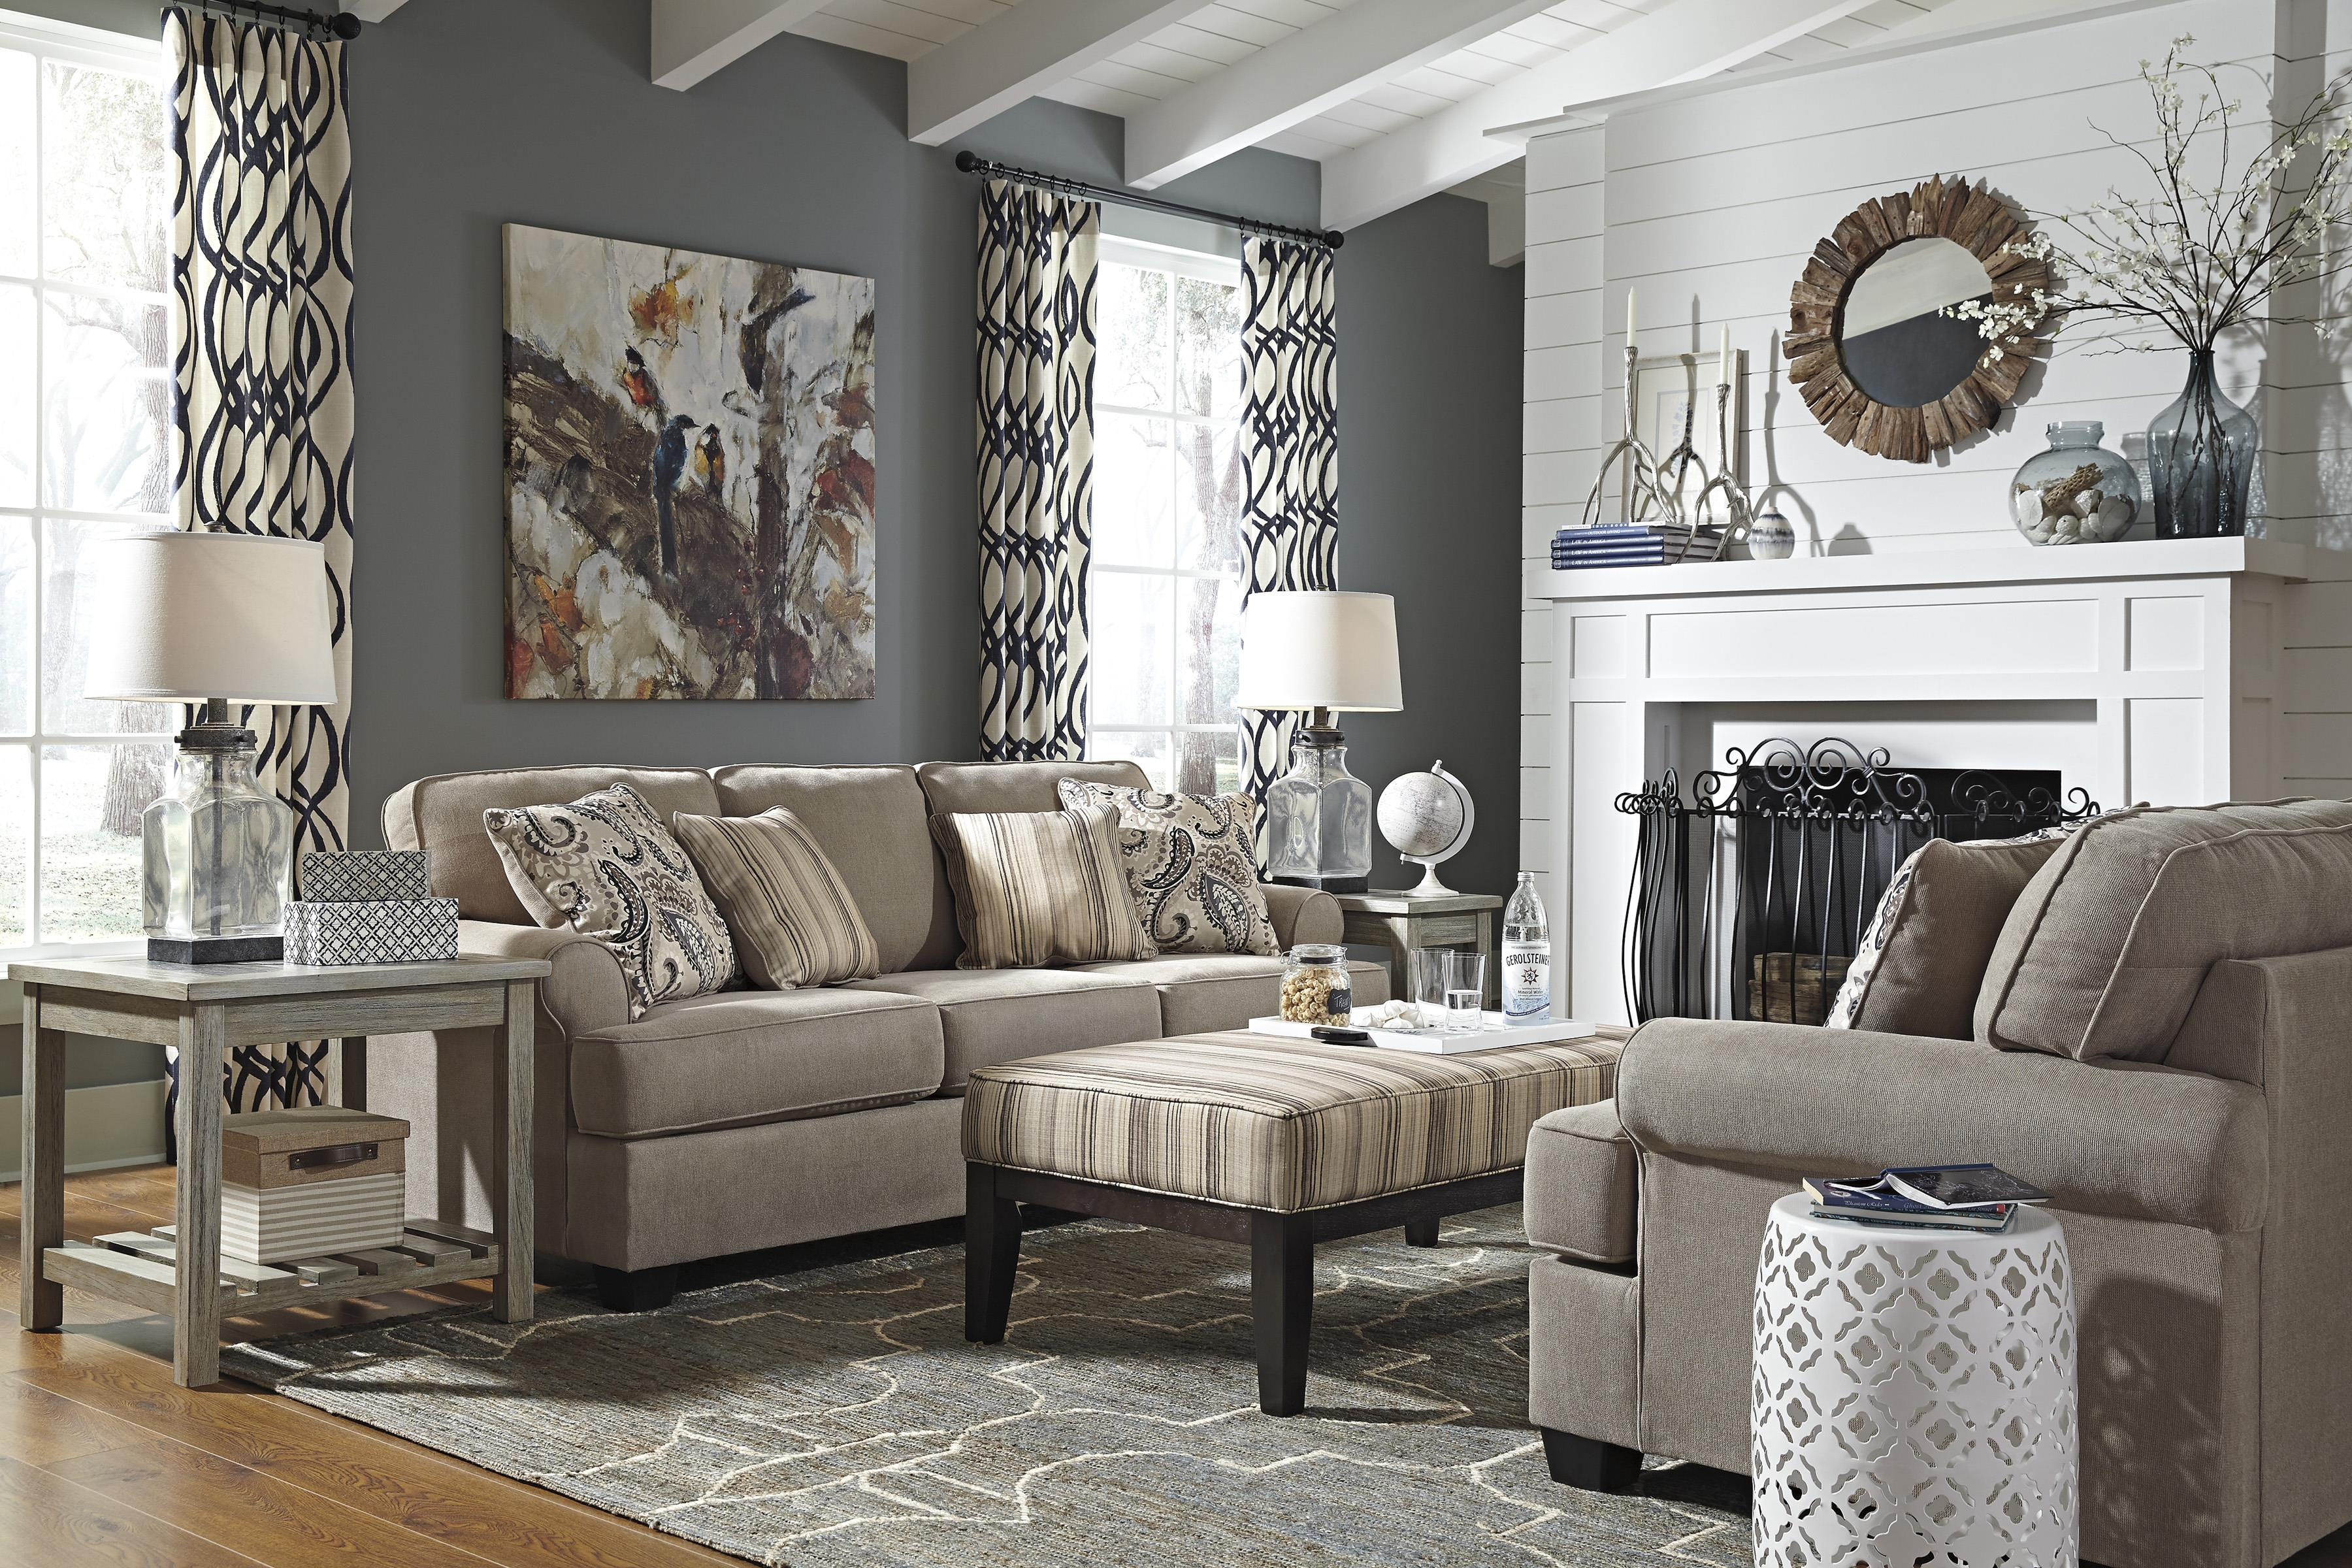 Signature Design by Ashley Melaya Stationary Living Room Group - Item Number: 47800 Living Room Group 2